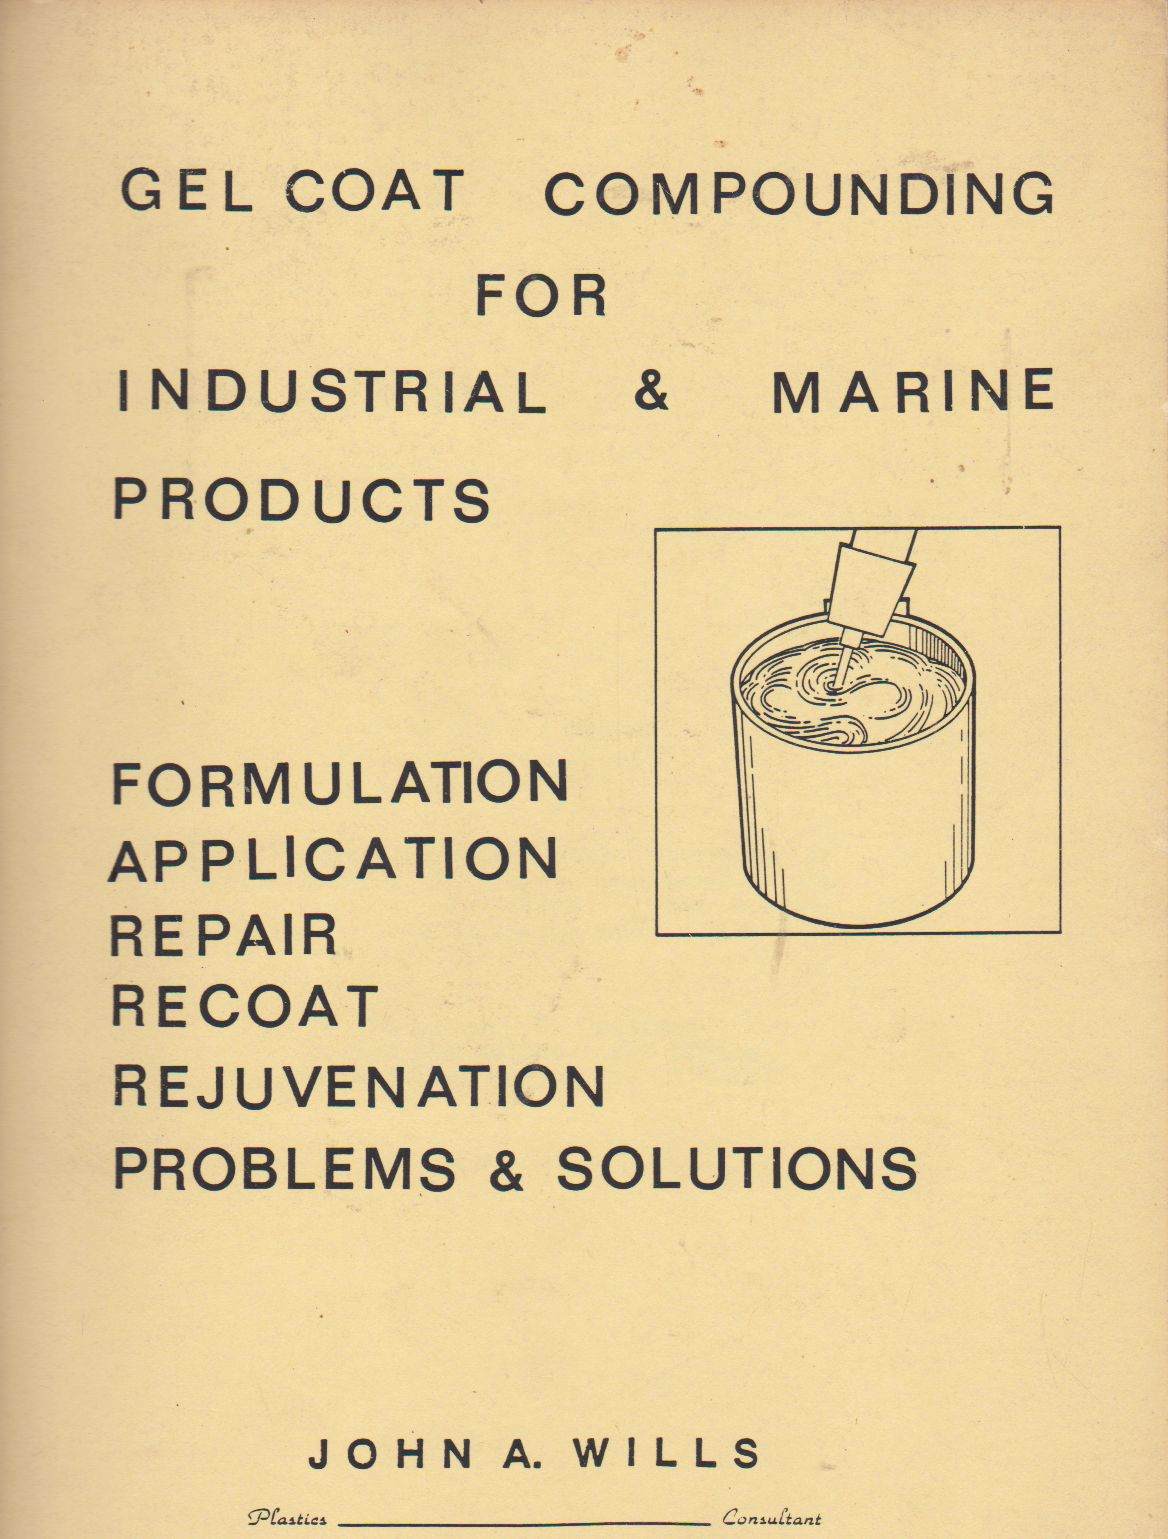 Gel Coat Compounding For Industrial And Marine Products